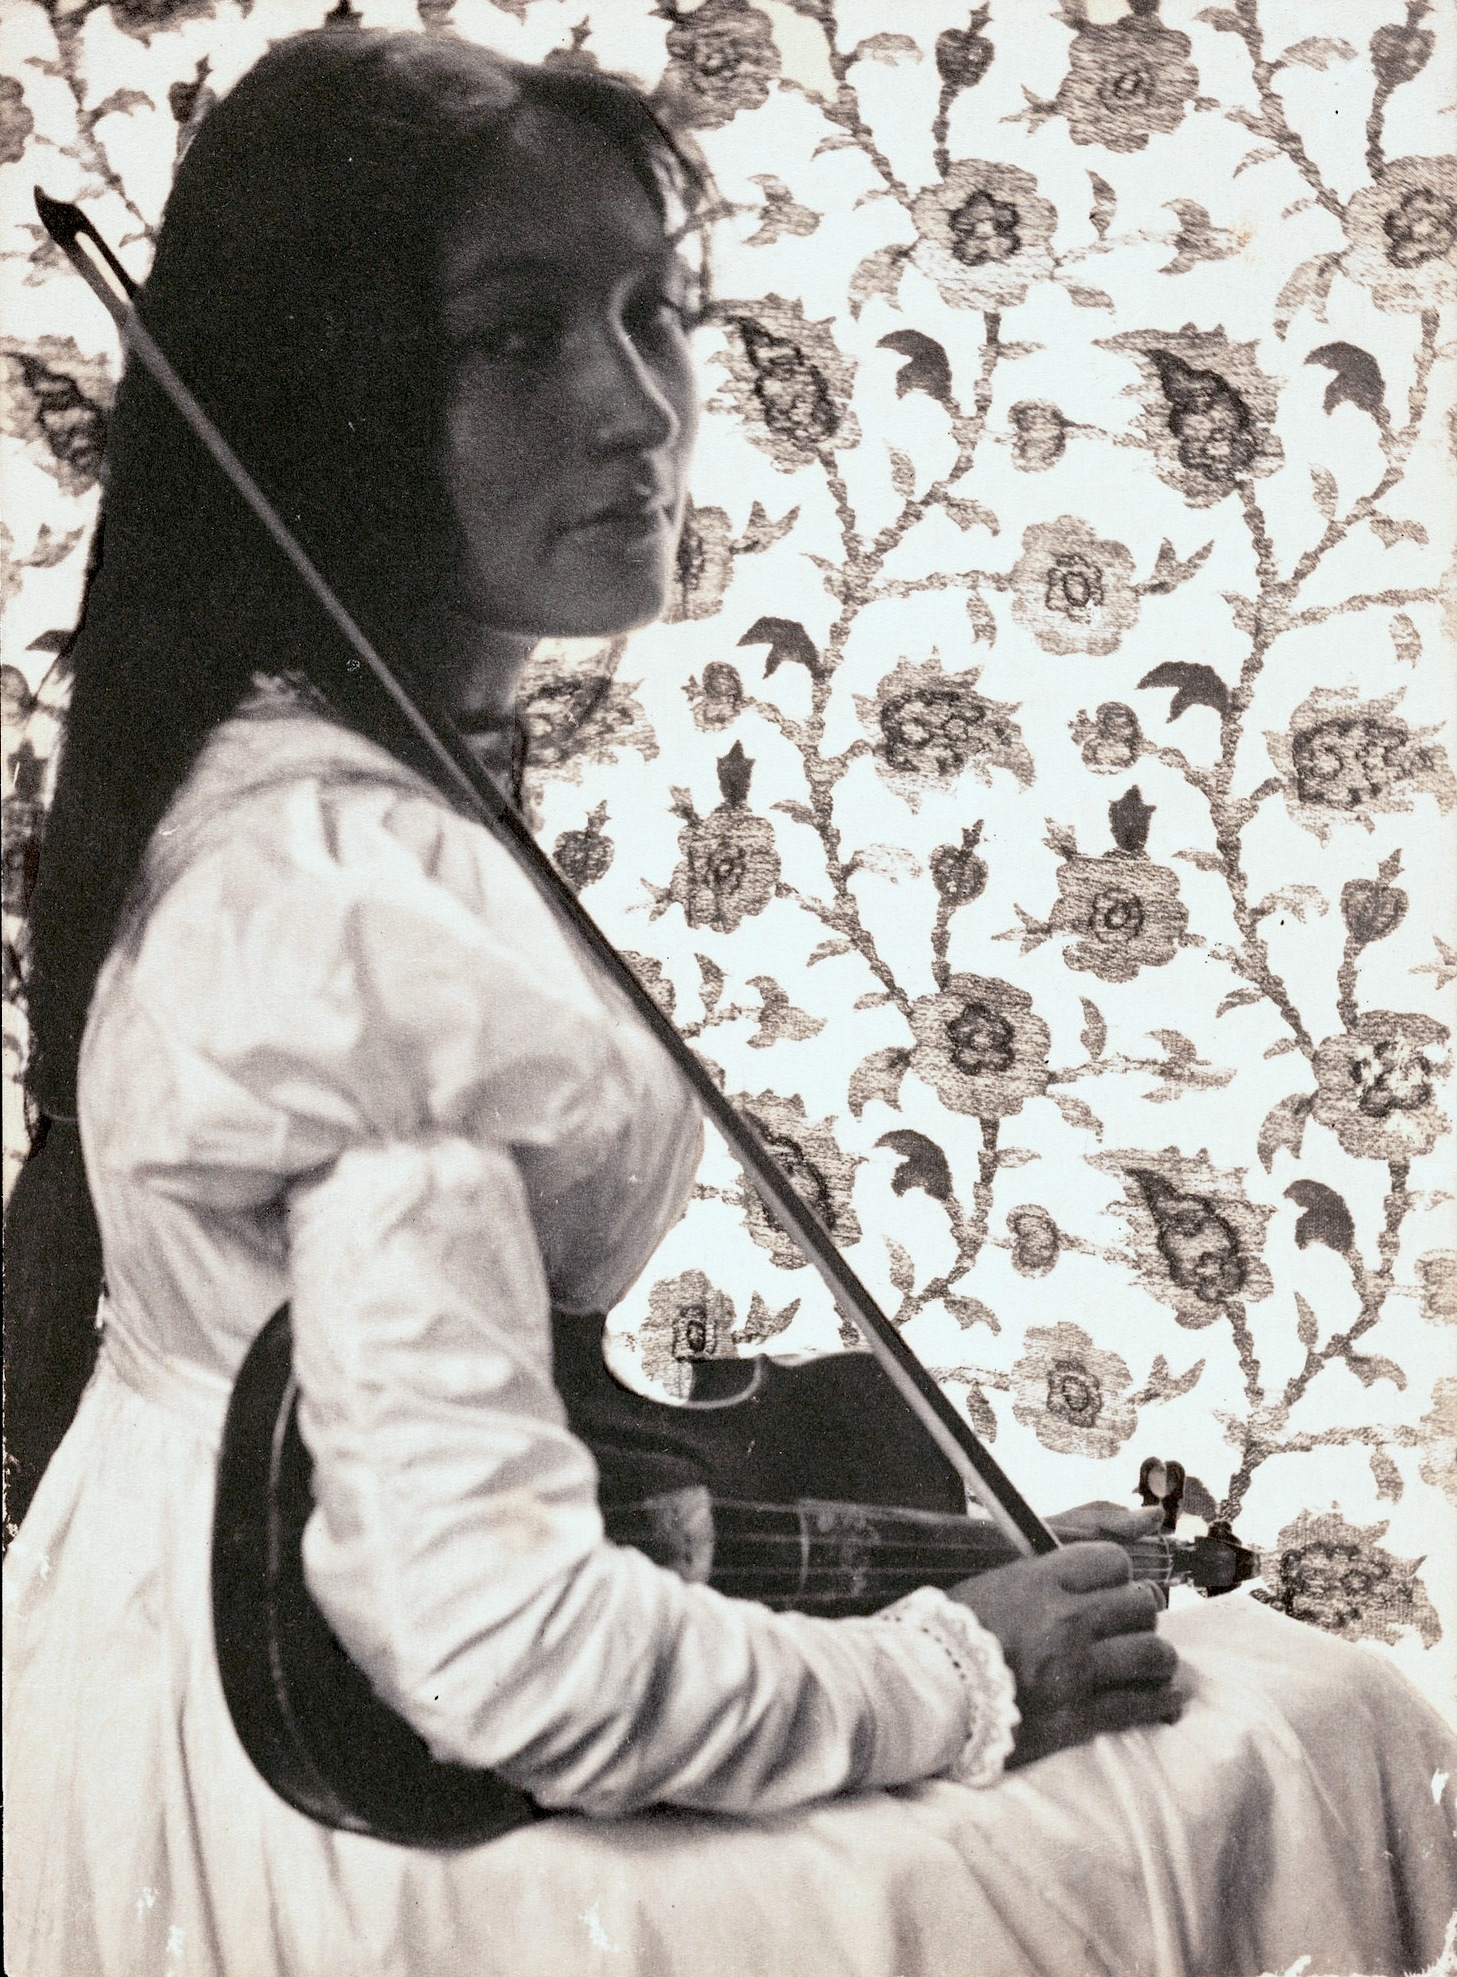 Portrait of Zitkala-Sa, wearing a white puff-sleeve dress, looking over her shoulder and holding her violin. The background is floral wallpaper.